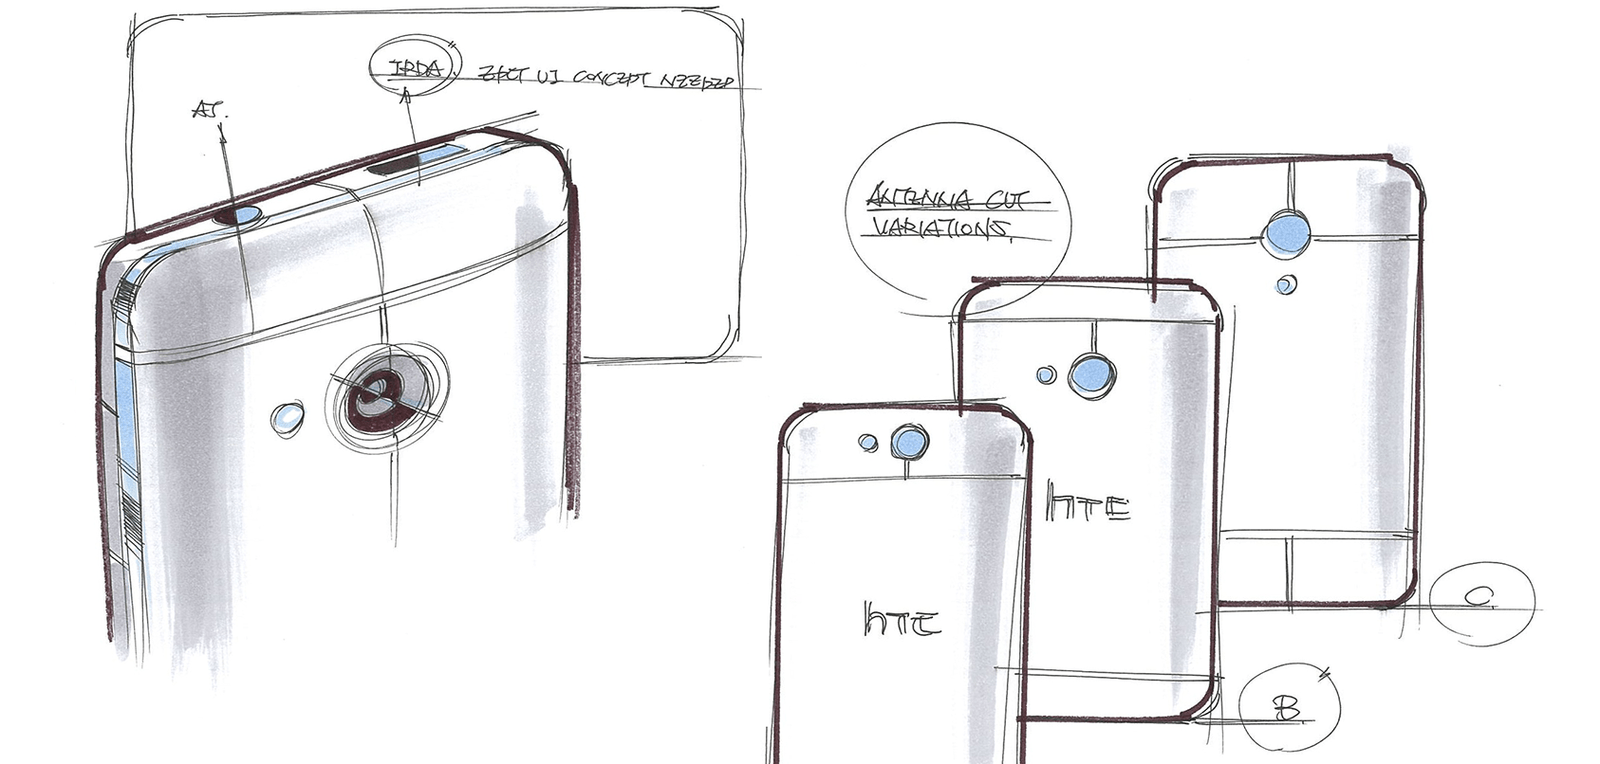 Early design sketches showcase development of the HTC One